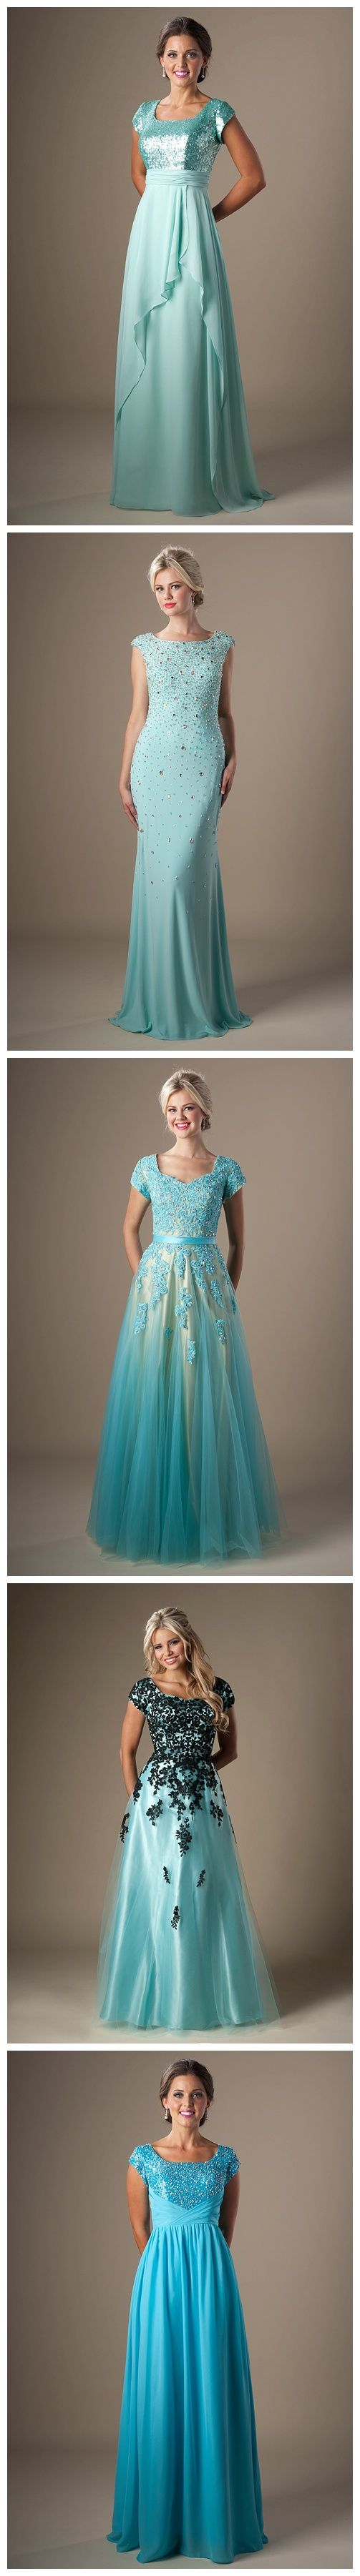 Modest prom dresses. Blue prom dresses. Prom fashion. Prom 2015. The one with the black lace is my absolute favorite!! :)